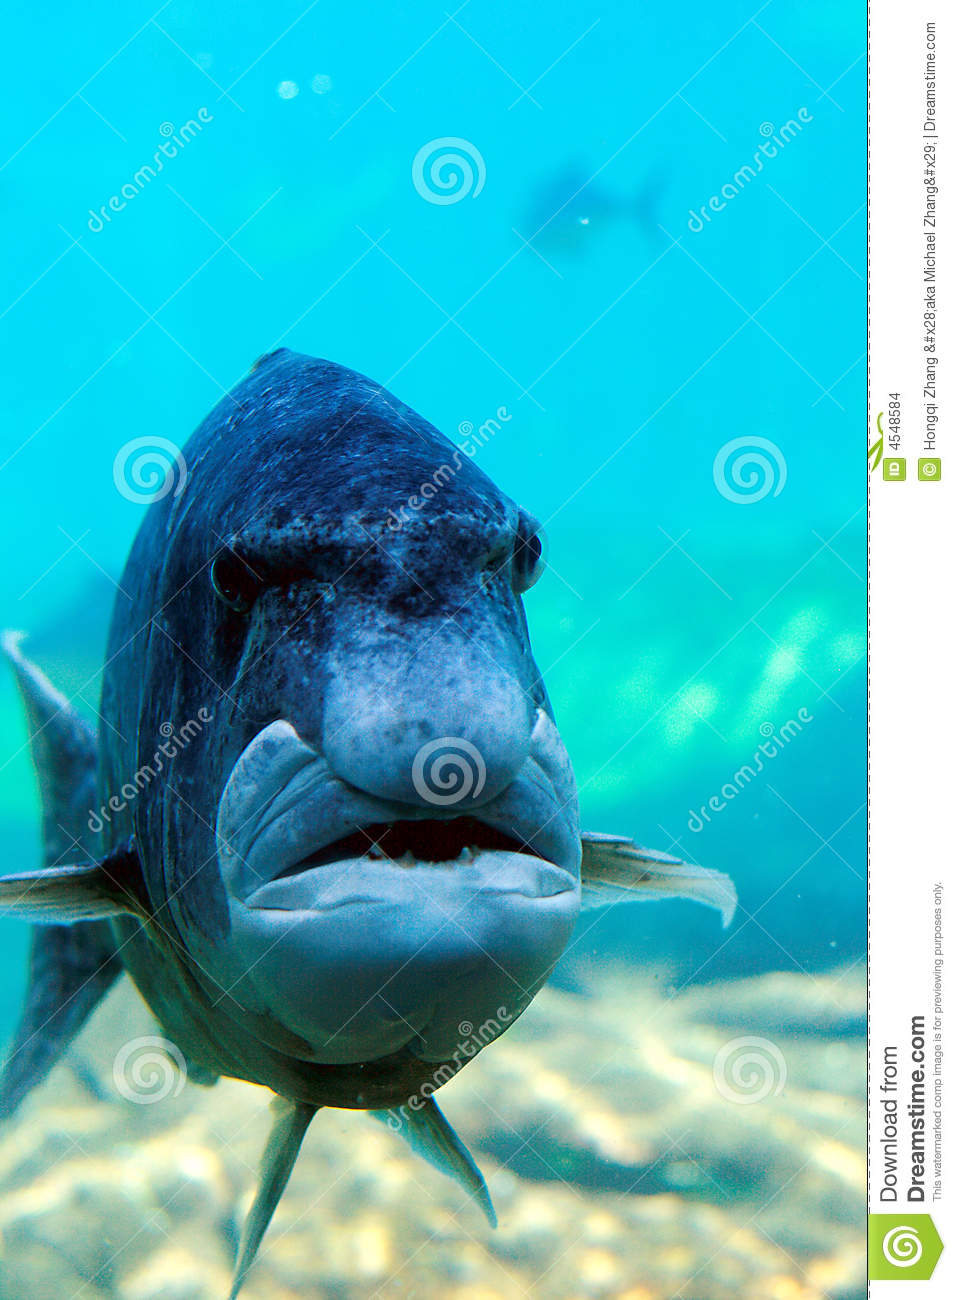 Fish Looks Like Human Face Stock Images - Image: 4548584